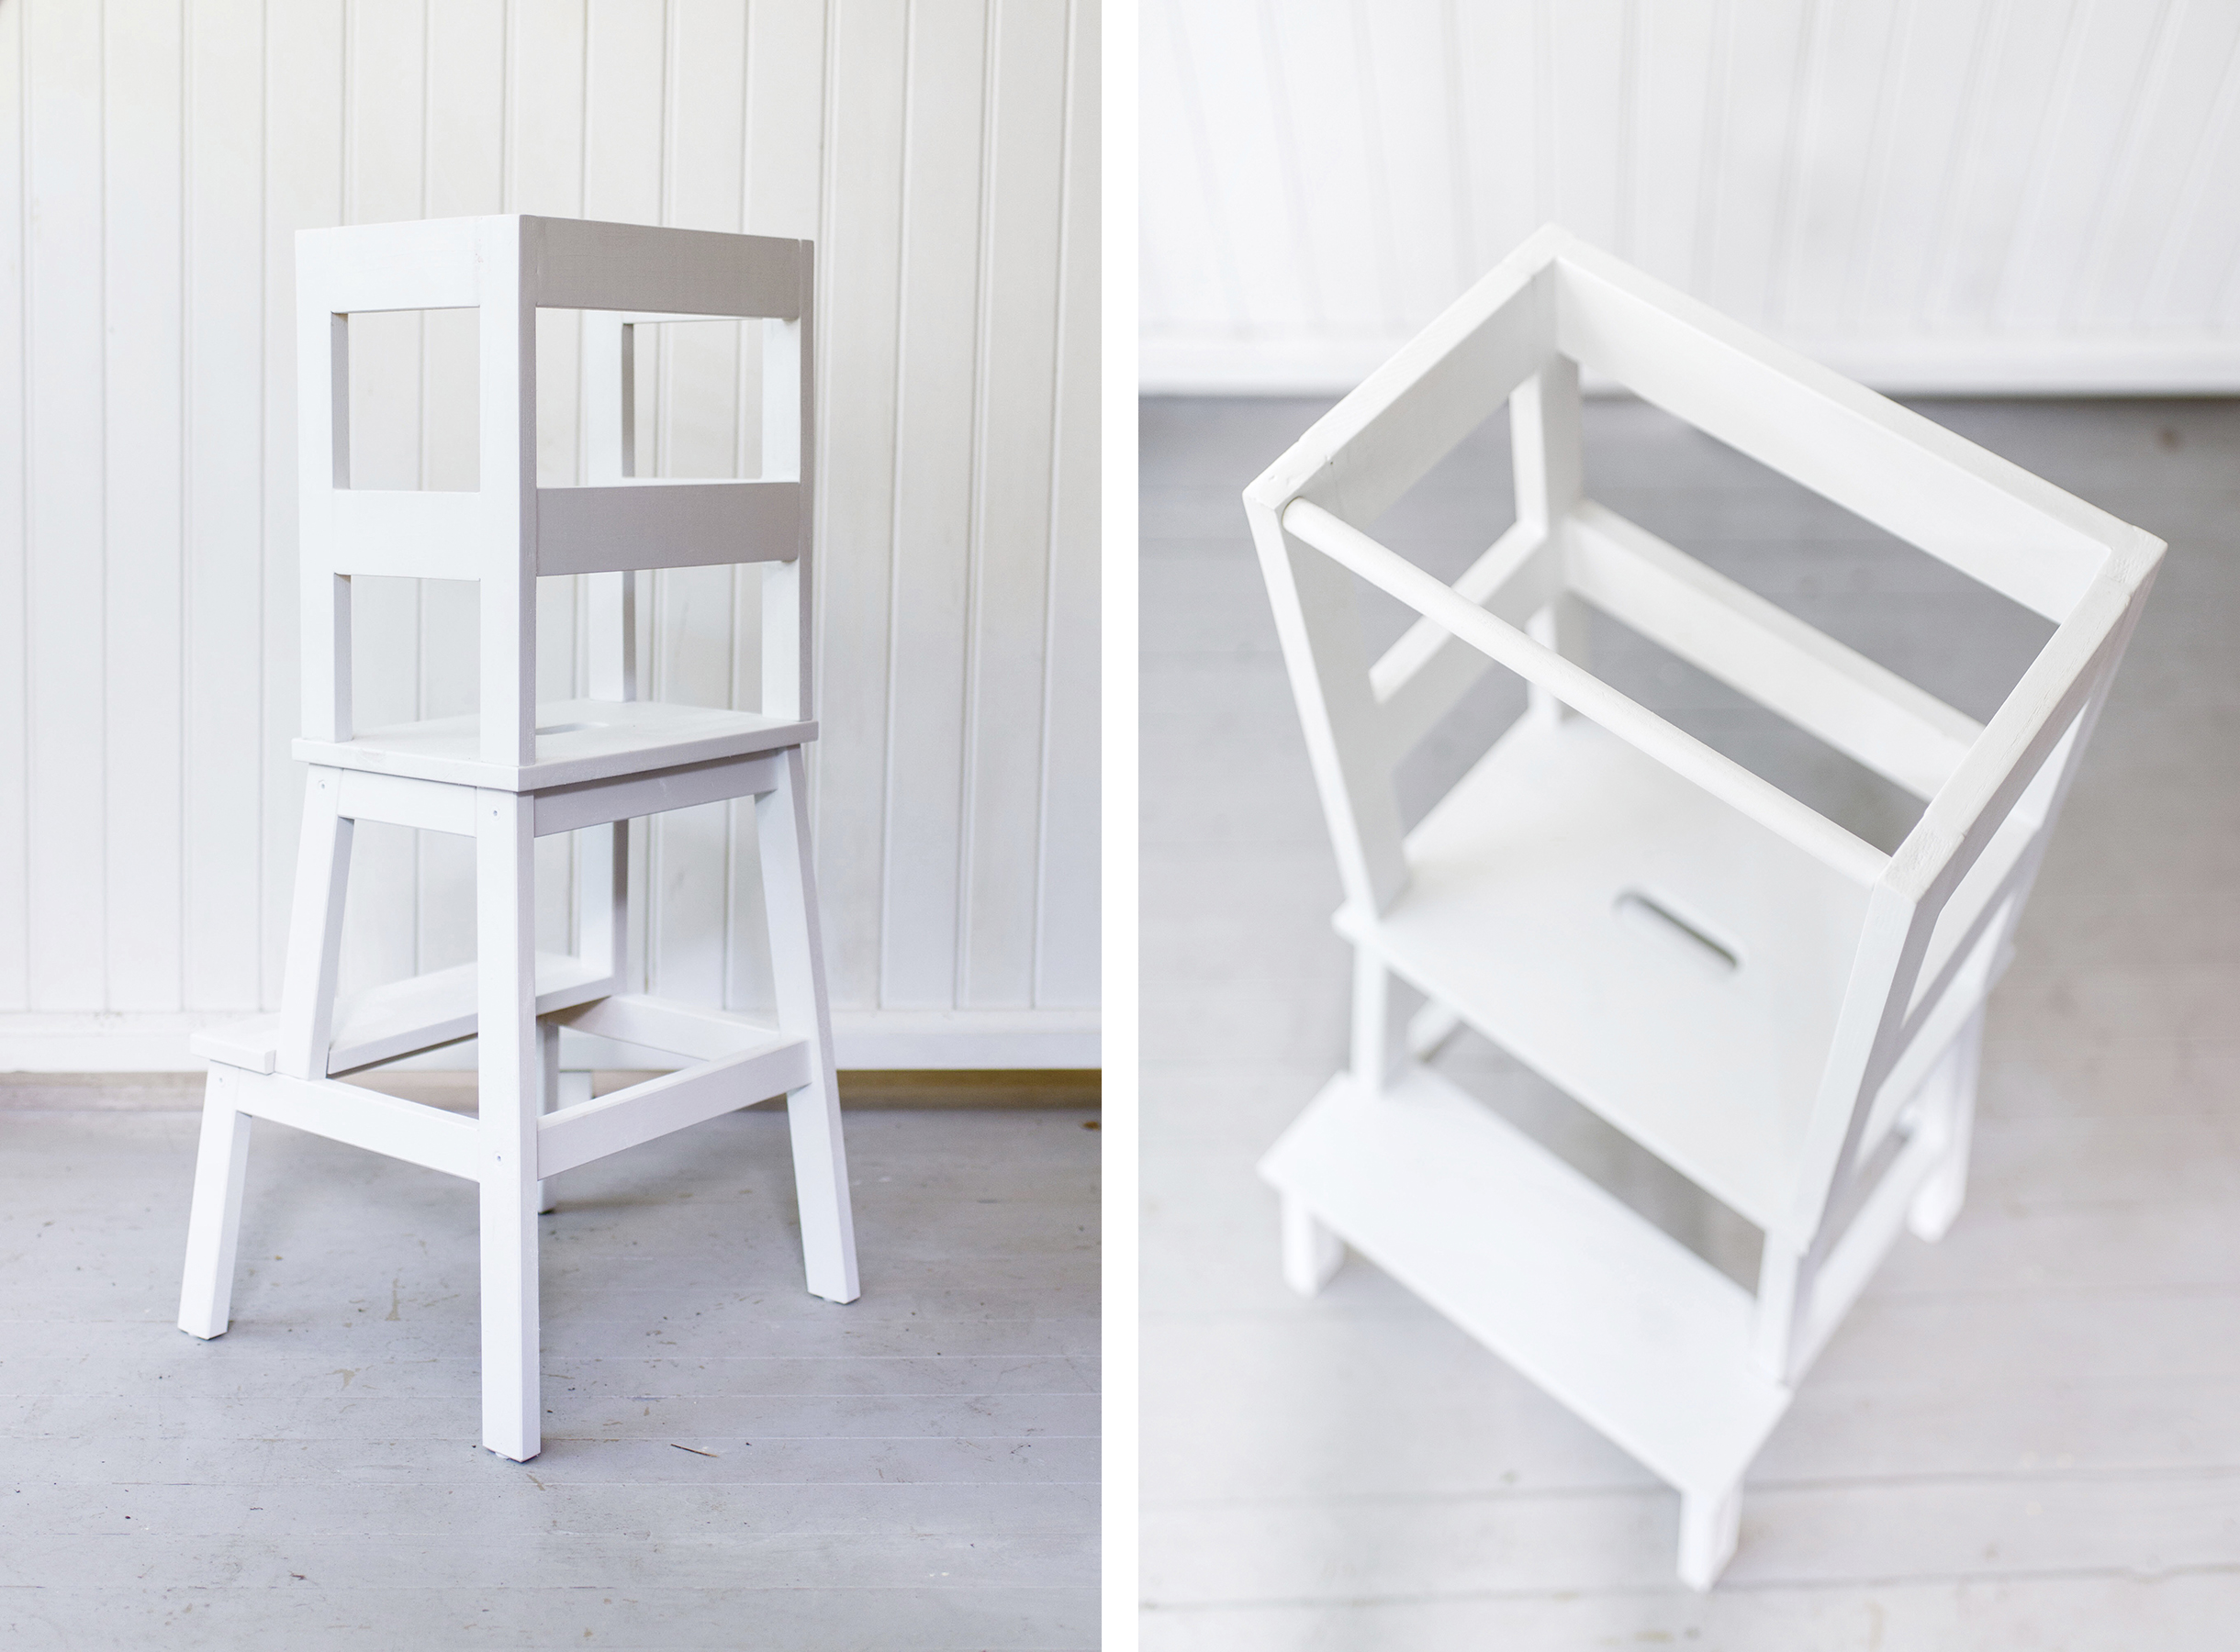 Ikea Hack Toddler Learning Tower Stool